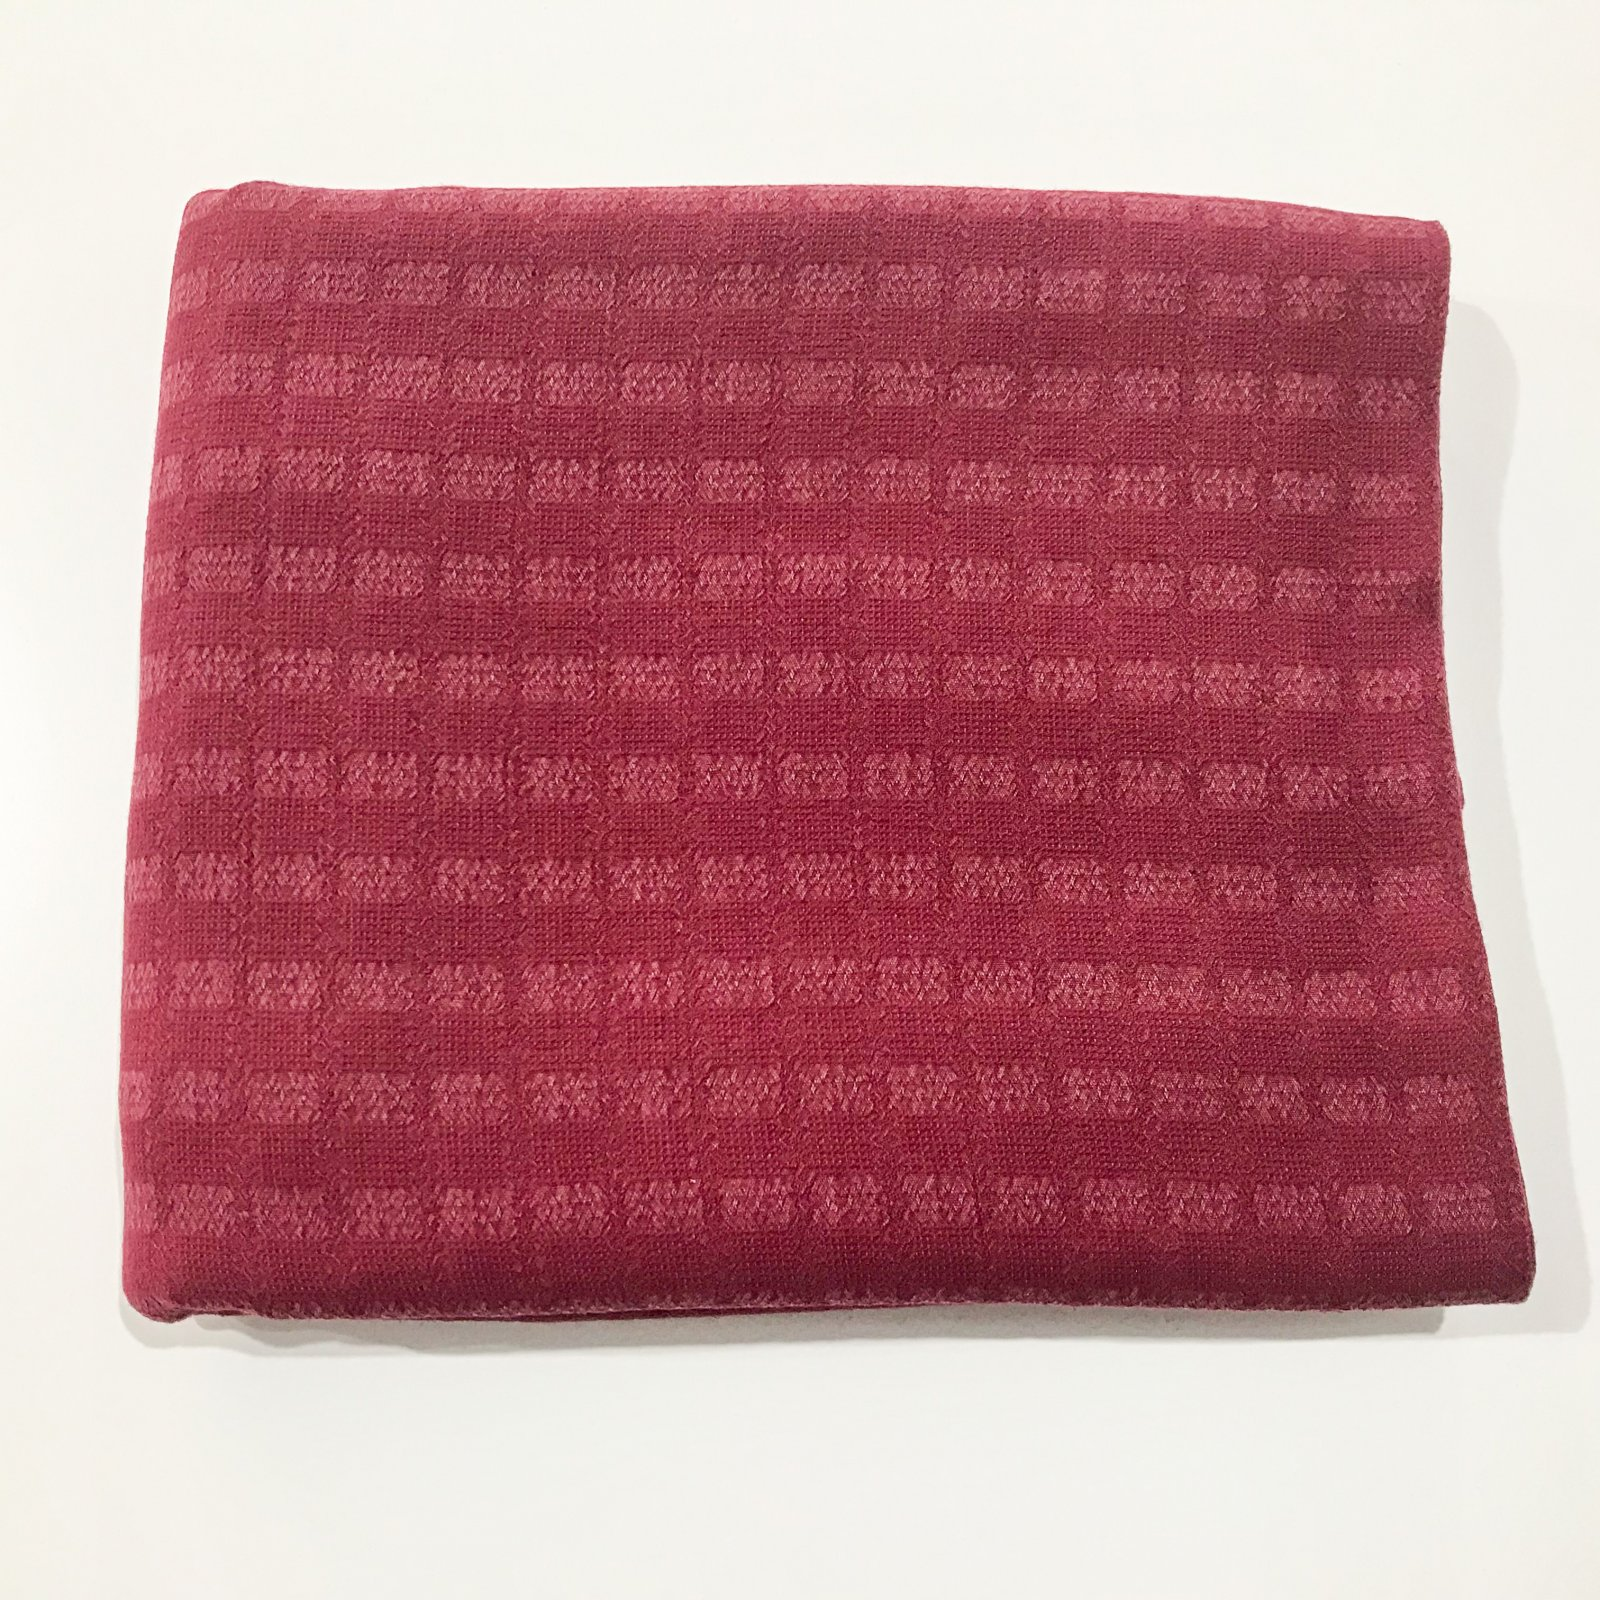 3 yard + 14 inches - Tencel Jacquard - Cranberry